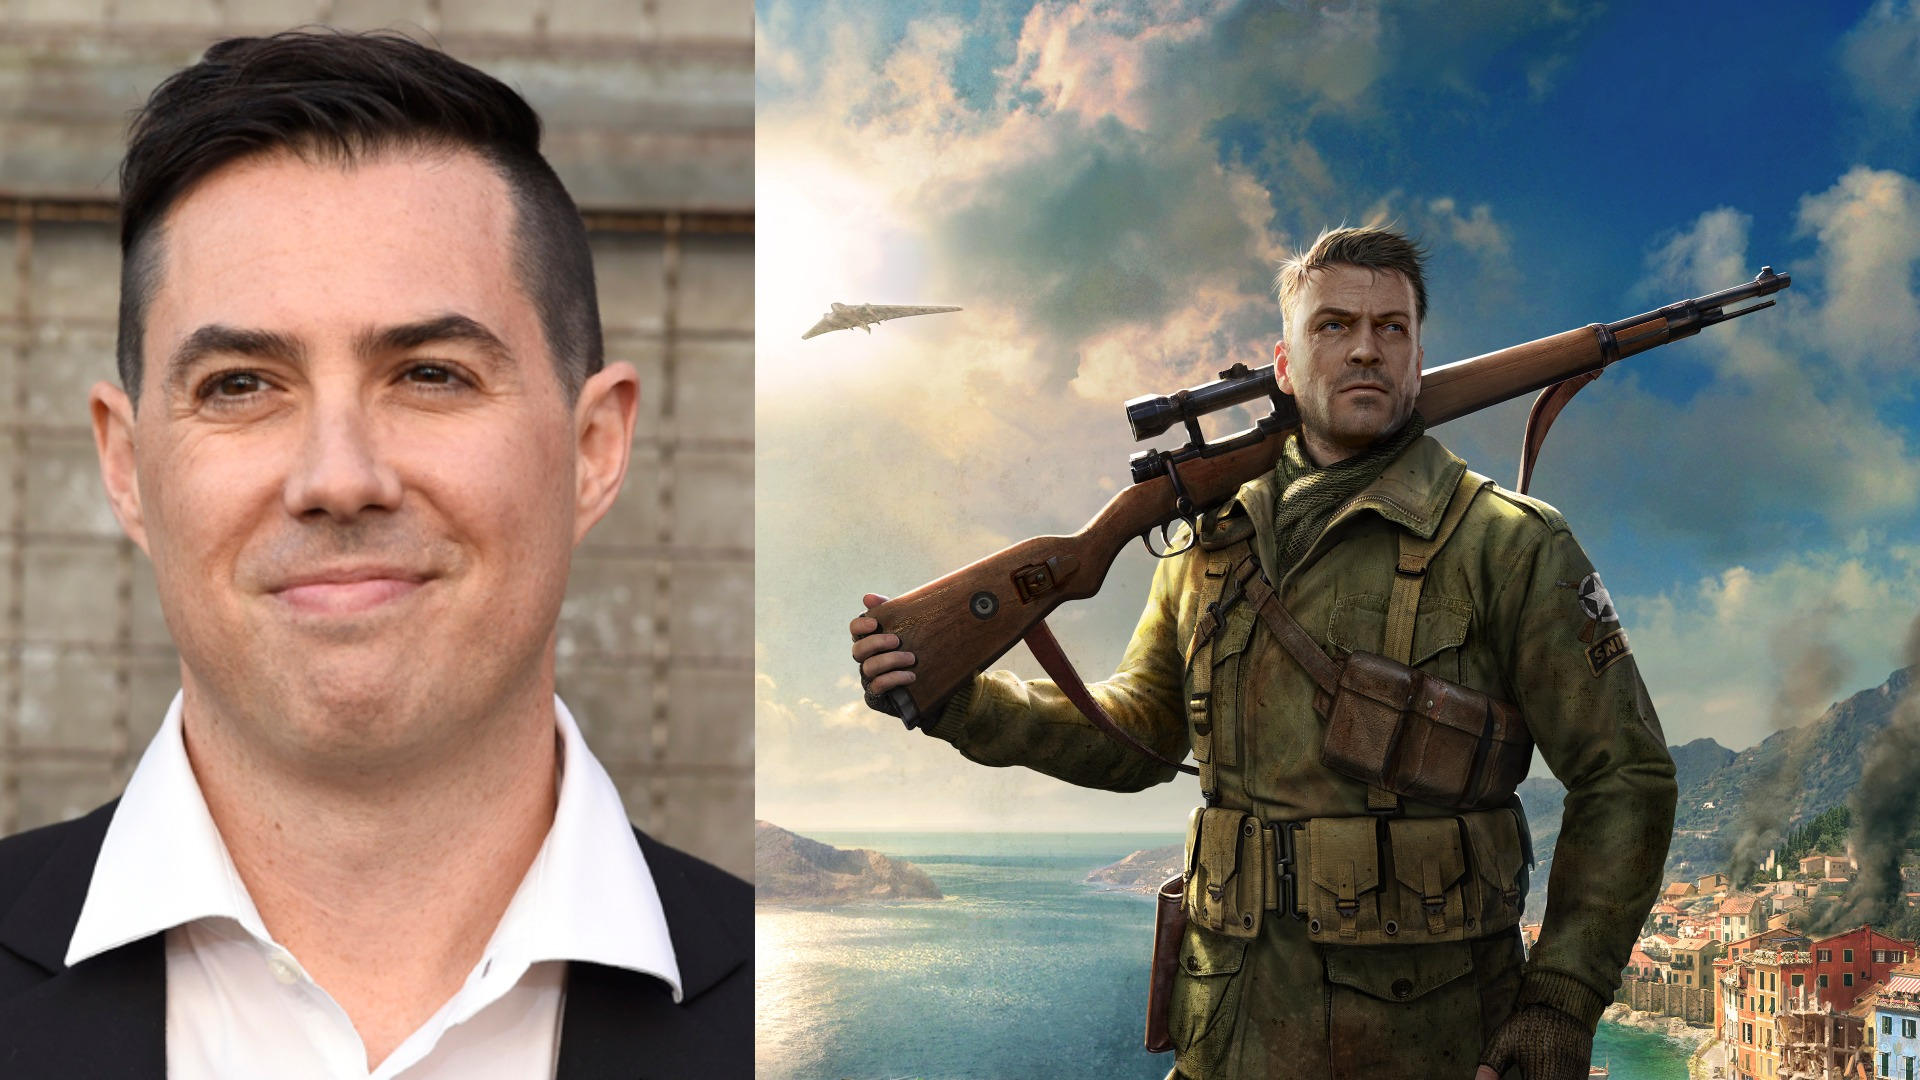 Variety is exclusively reporting that Brad Peyton, who directed the film adaptation of the video game Rampage, will be directing the character-driven action thriller Sniper Elite, which is inspired by the stealth-shooter video game franchise of the same name.